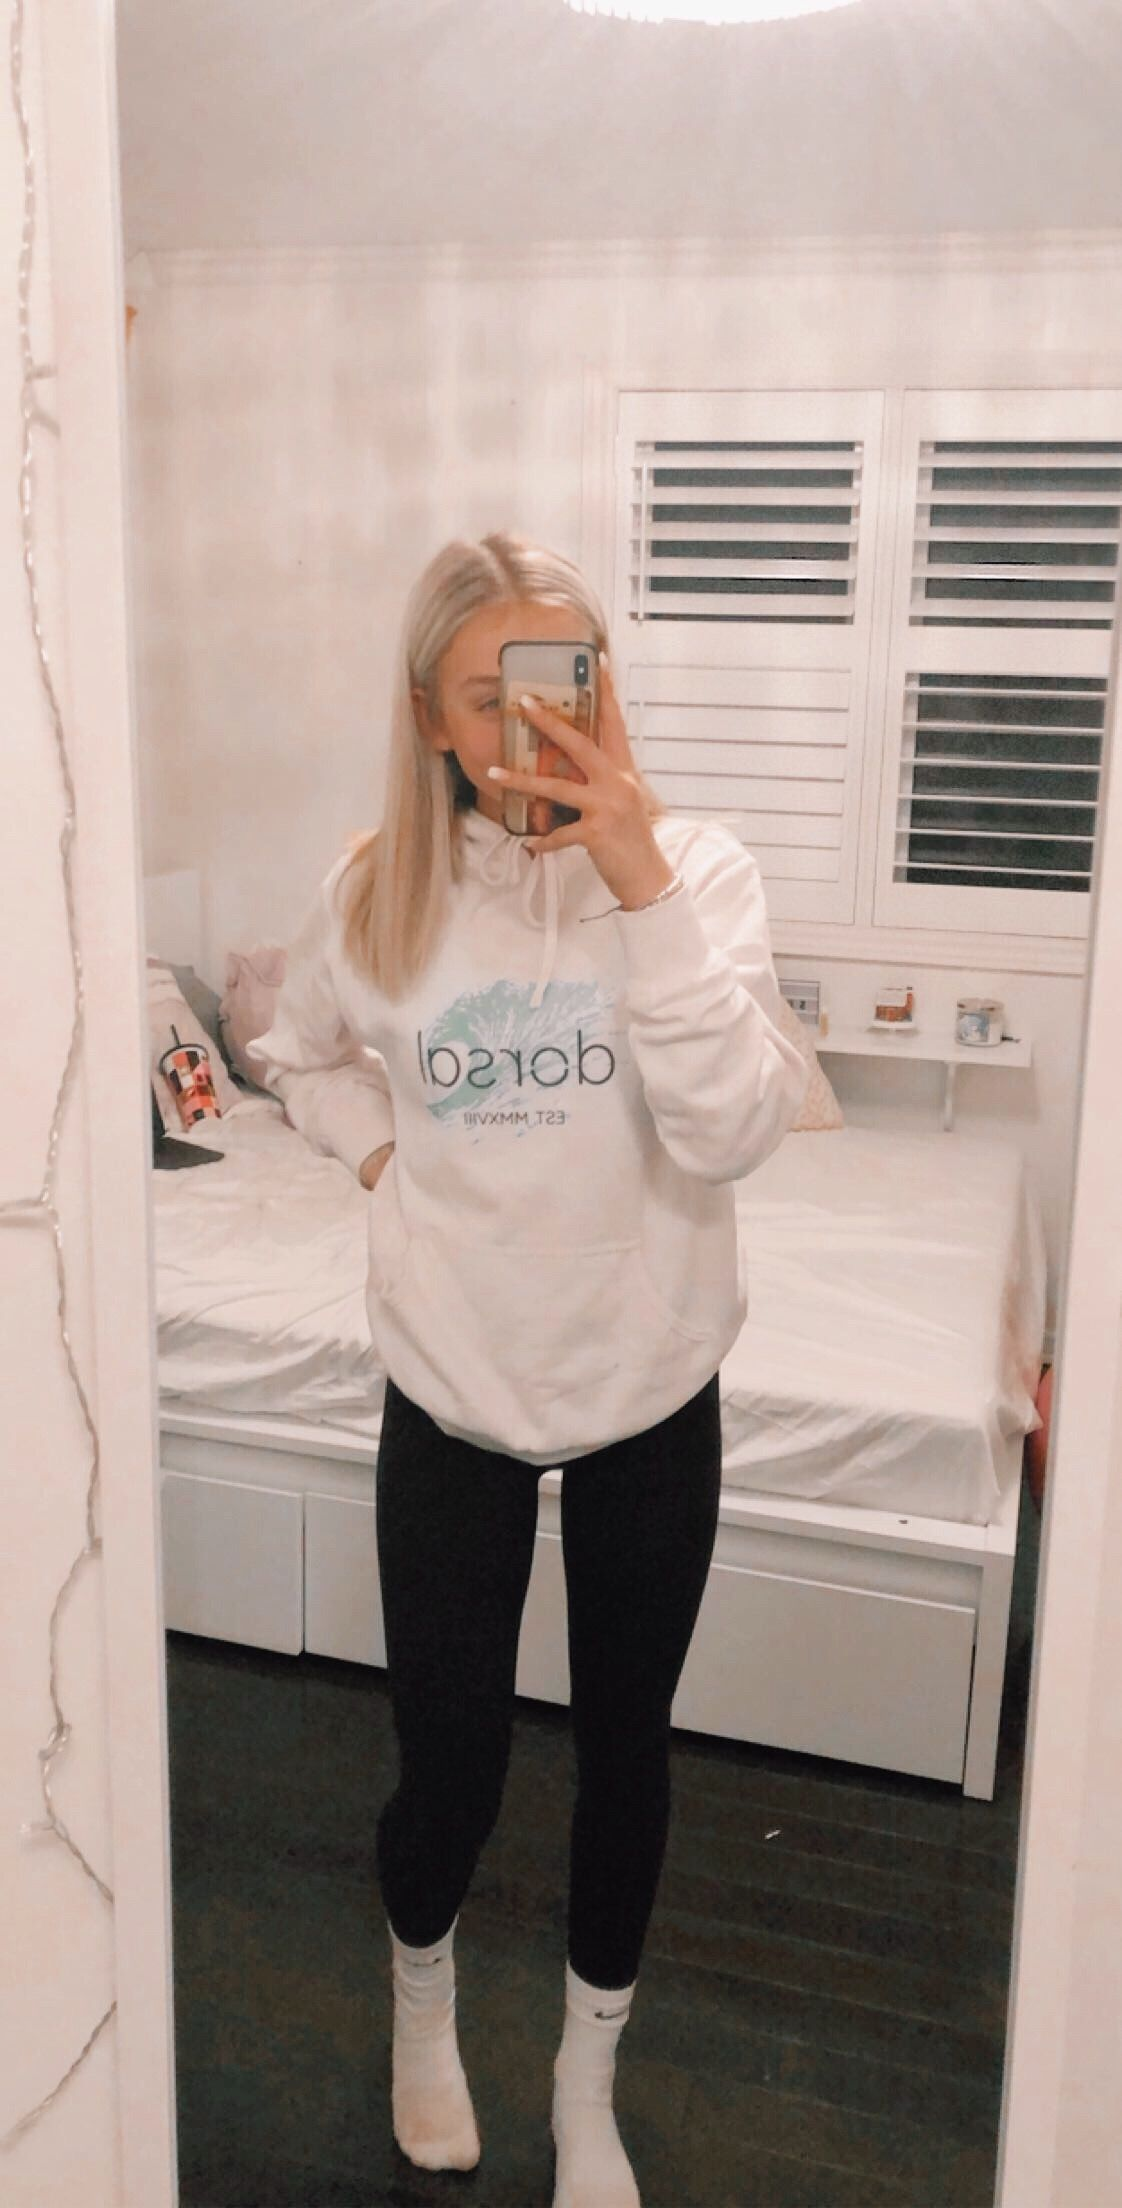 School Outfits With Leggings : school, outfits, leggings, Comfy, Outfit, Ideas, Outfits, Leggings,